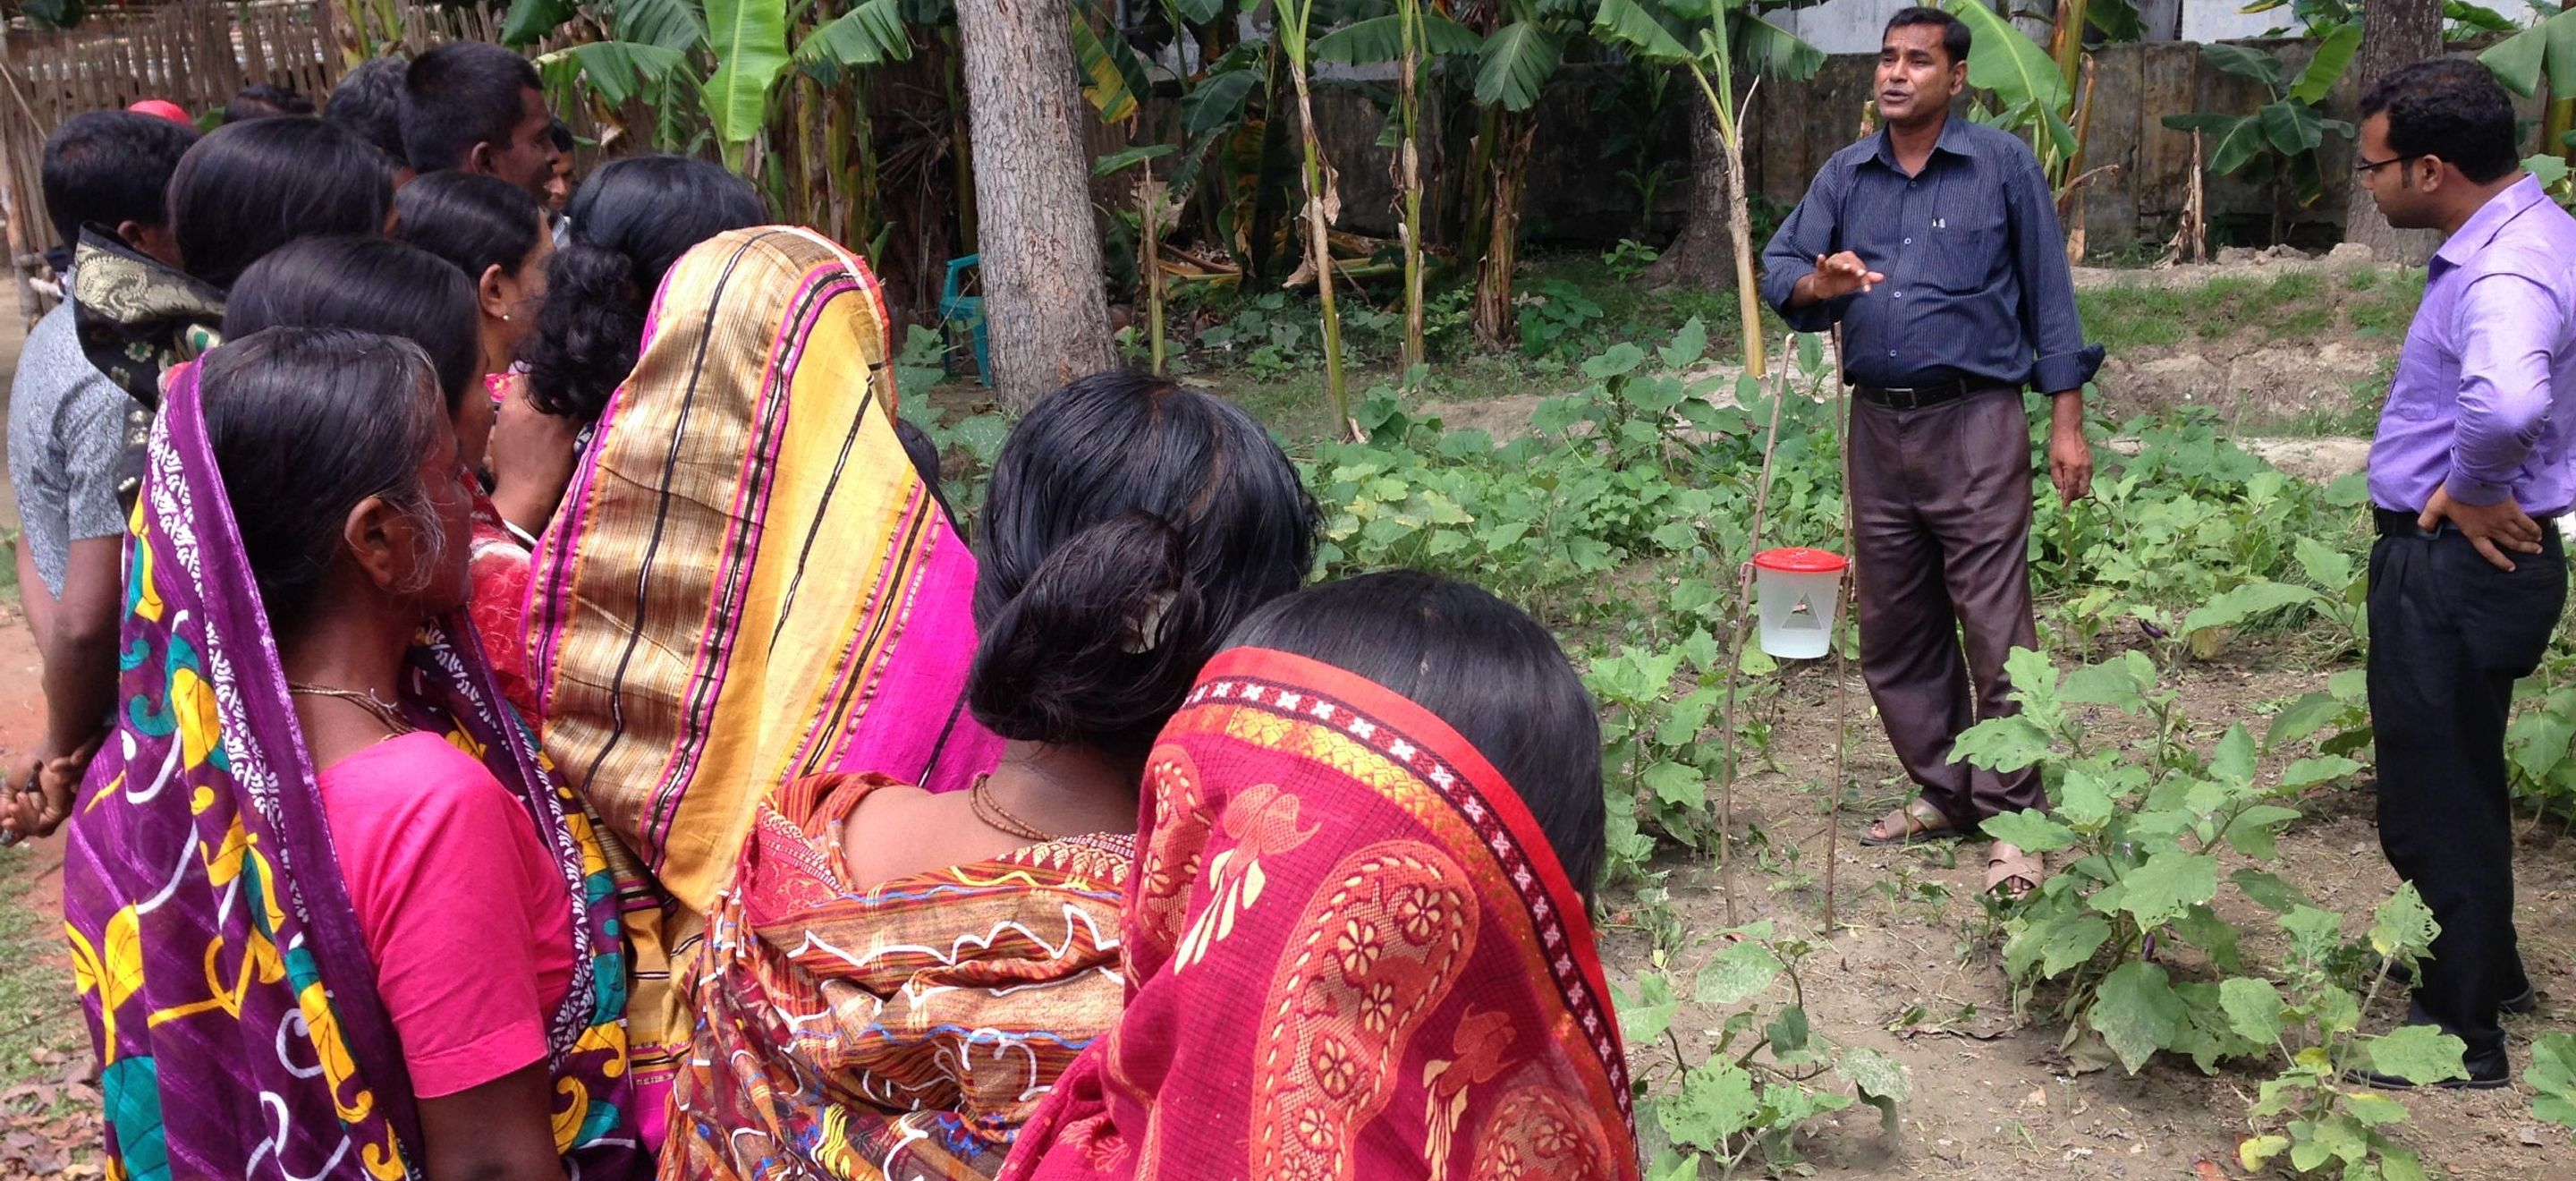 Farmers gathered in Bangladesh learn how to use low-cost, organic pheromone traps that save money while protecting crops and the environment.